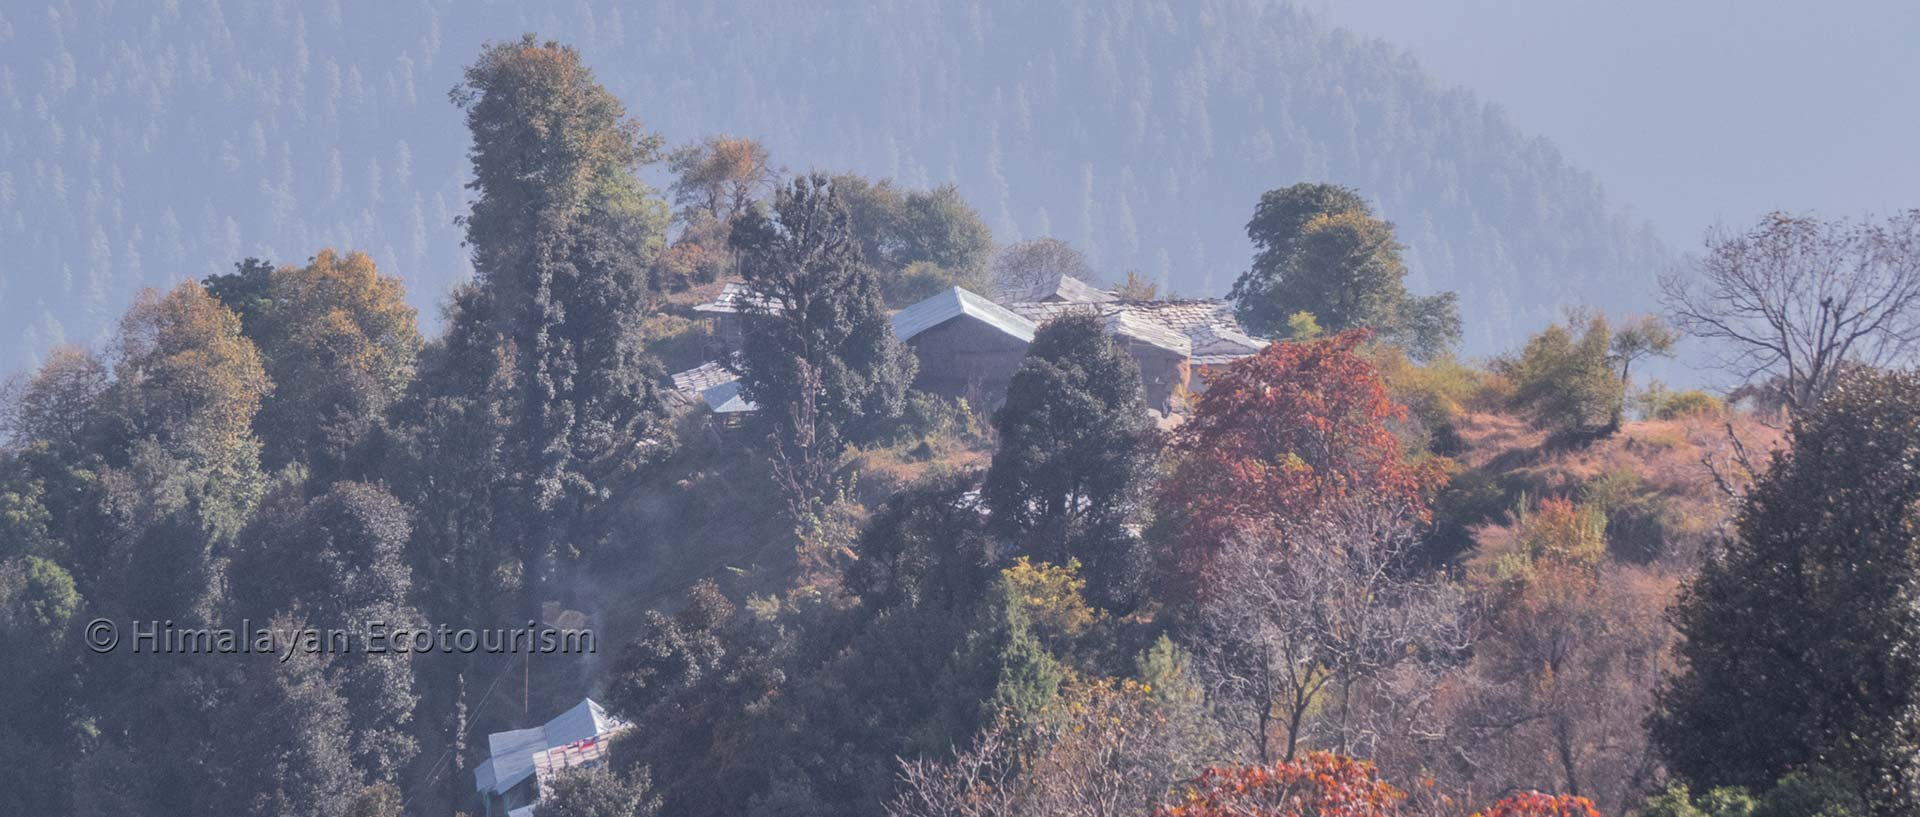 LAkcha village, Great Himalayan National Park GHNP